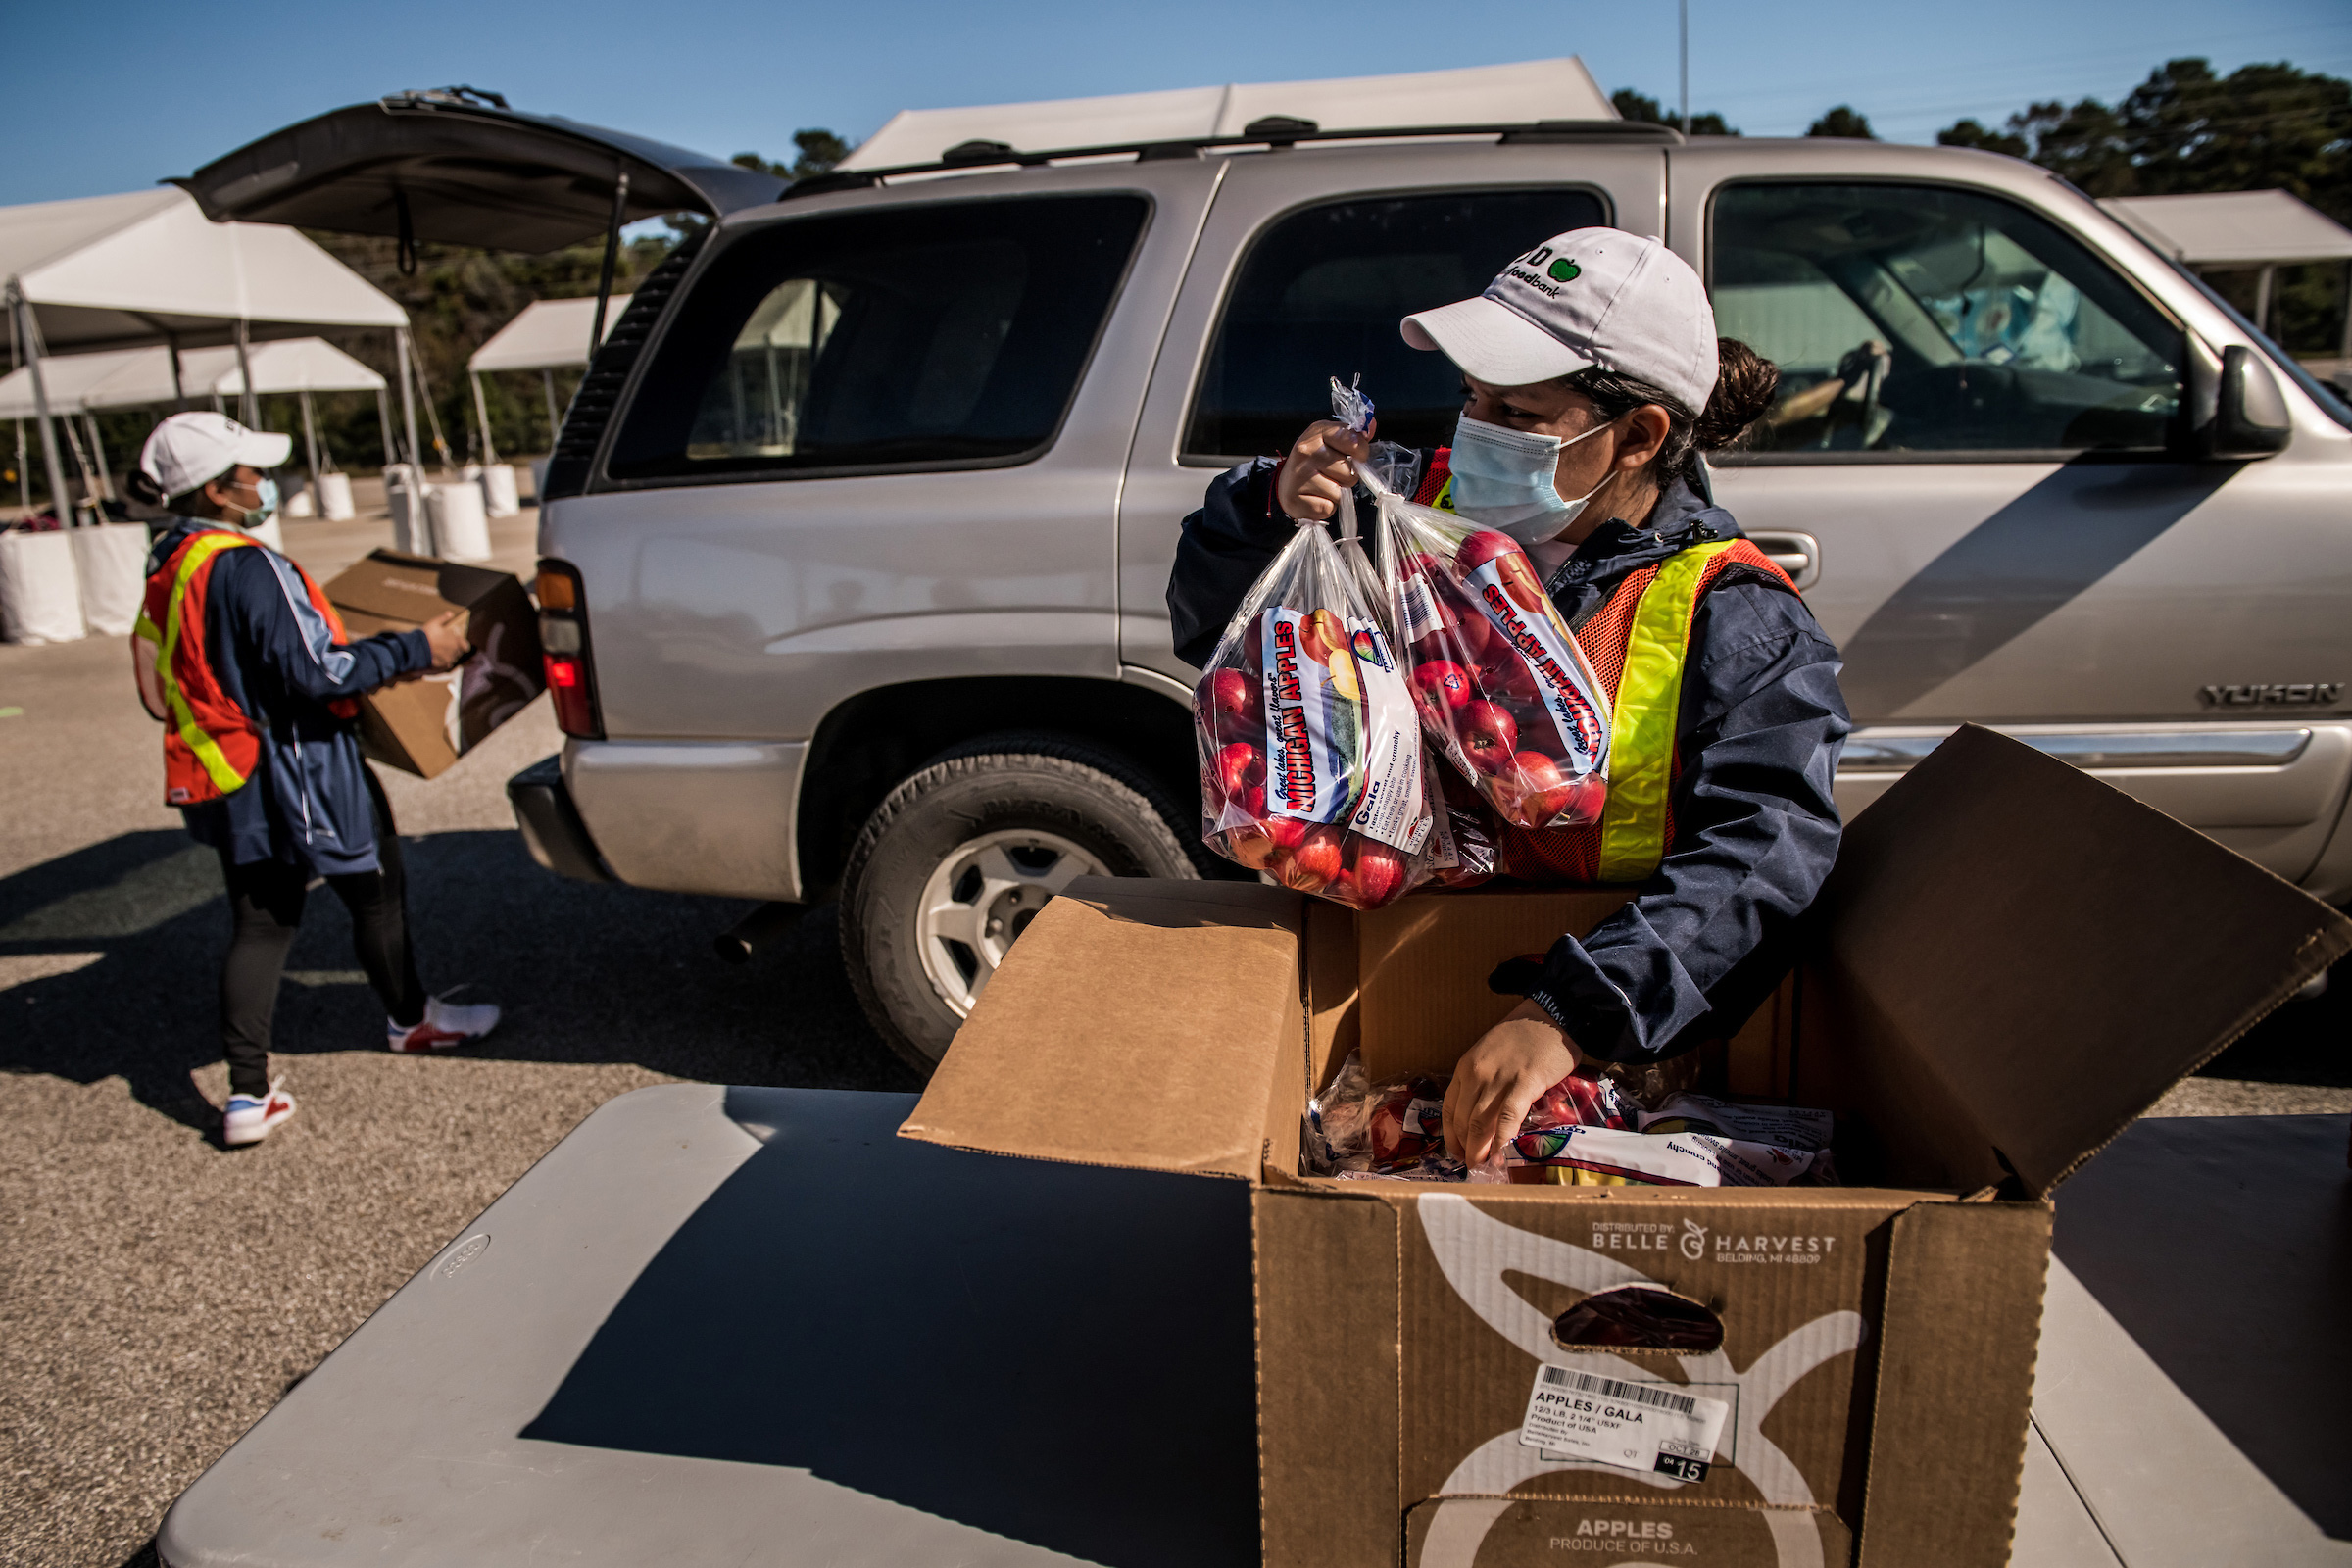 Boxes of food are loaded into cars at the food distribution site run by the Houston Food Bank.